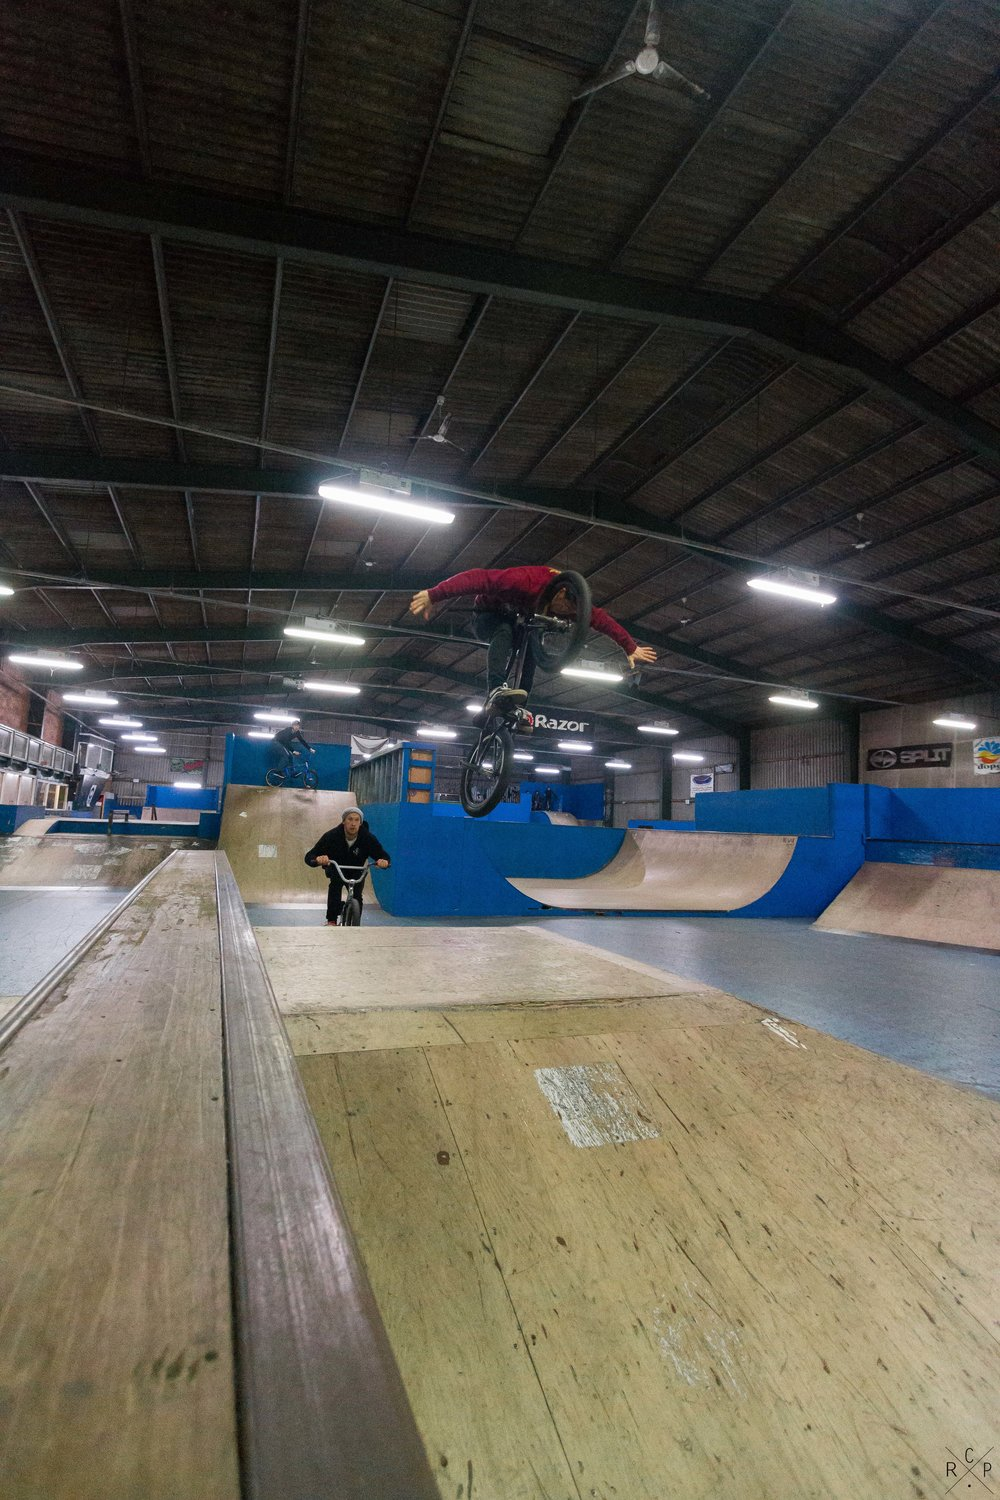 Jay Tuck No-Hander - Ramp City, Blackpool, England 24/11/2016